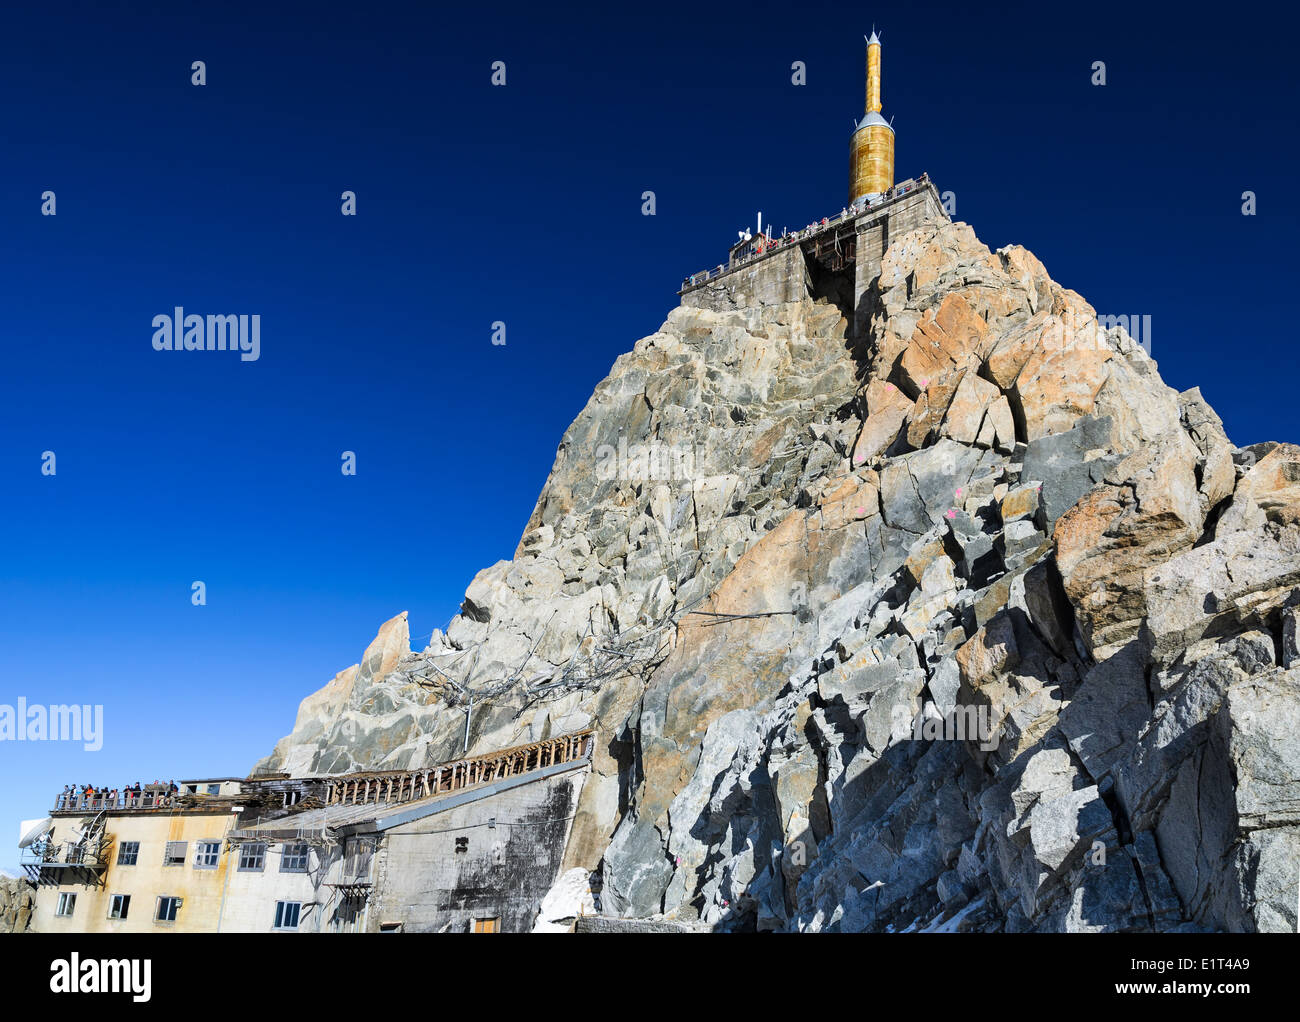 The Aiguille du Midi (3,842 m) is mountain in the Mont Blanc massif in the French Alps with panoramic view platform to Chamonix - Stock Image